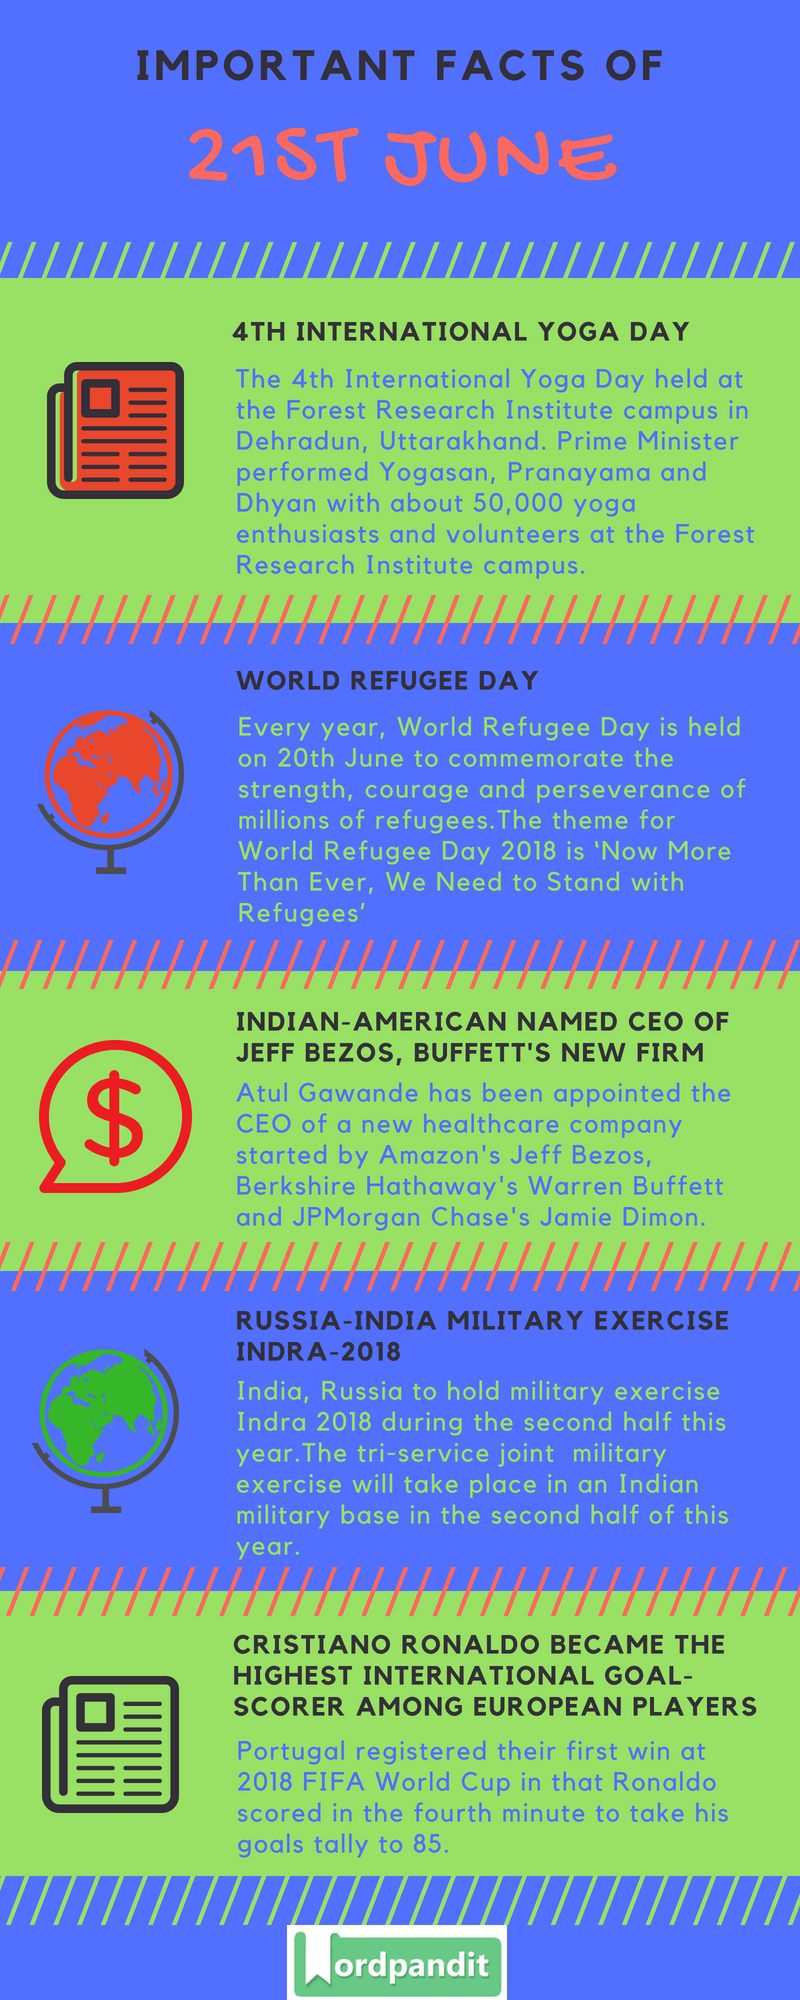 Daily Current Affairs 21 June 2018 Current Affairs Quiz June 21 2018 Current Affairs Infographic